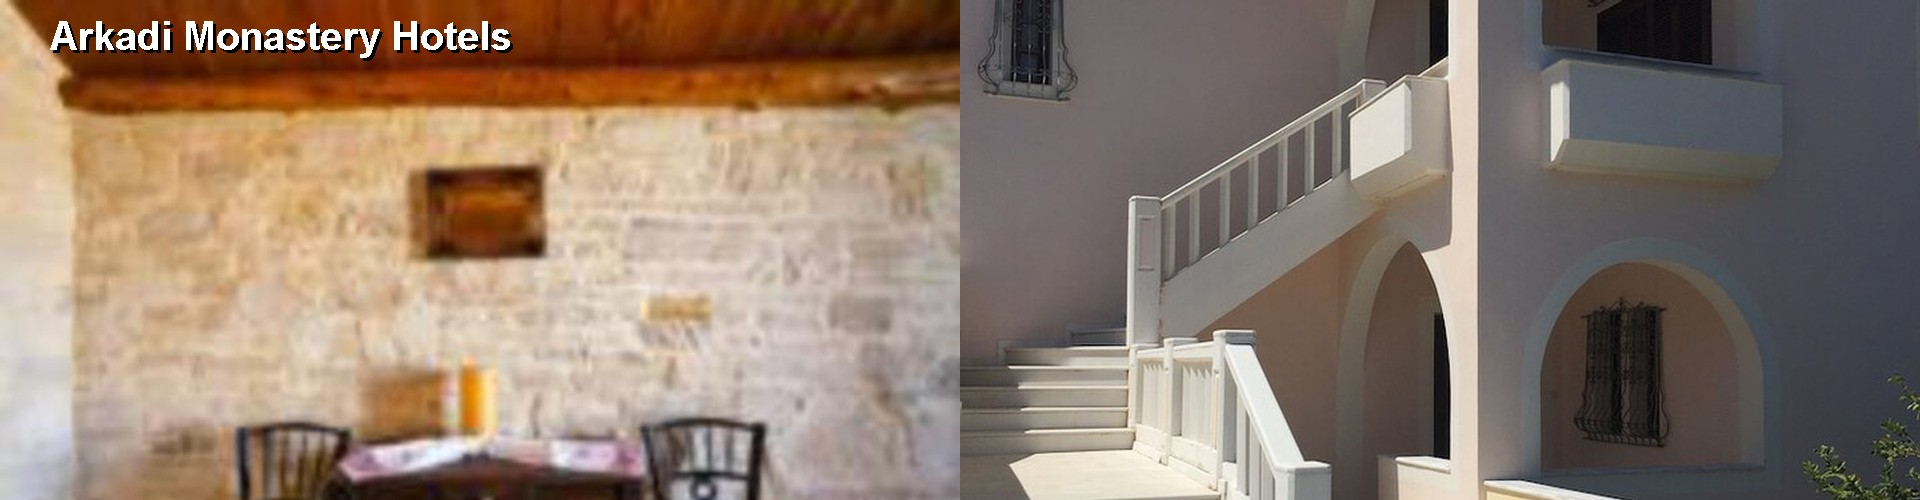 5 Best Hotels near Arkadi Monastery